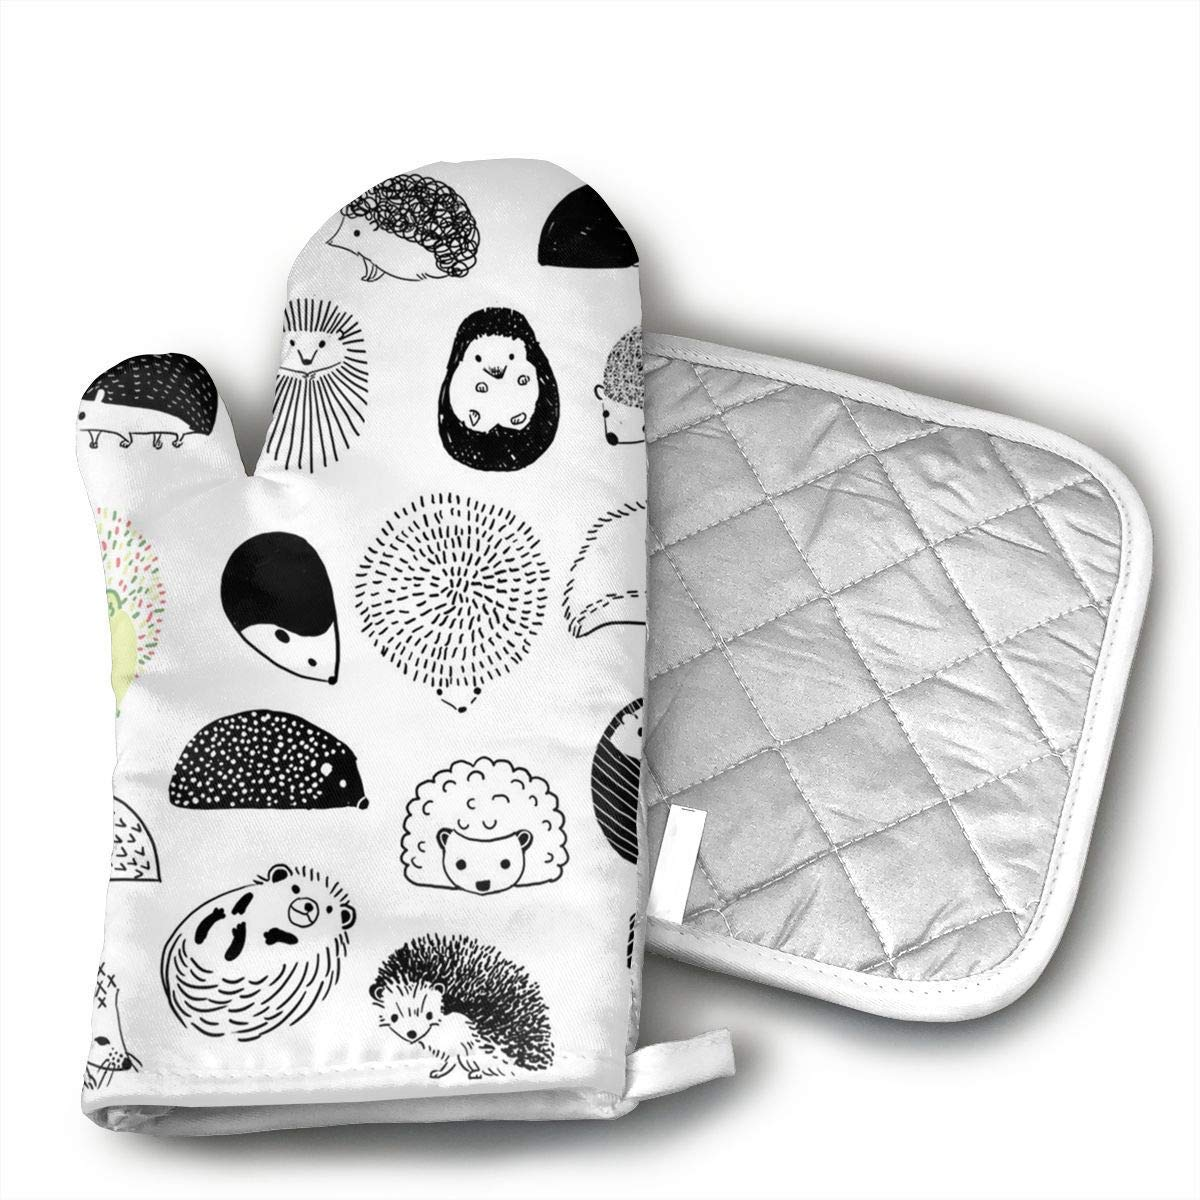 Cute Hedgehog Oven Mitts and Pot Holders Set with Polyester Cotton Non-Slip Grip, Heat Resistant, Oven Gloves for BBQ Cooking Baking, Grilling